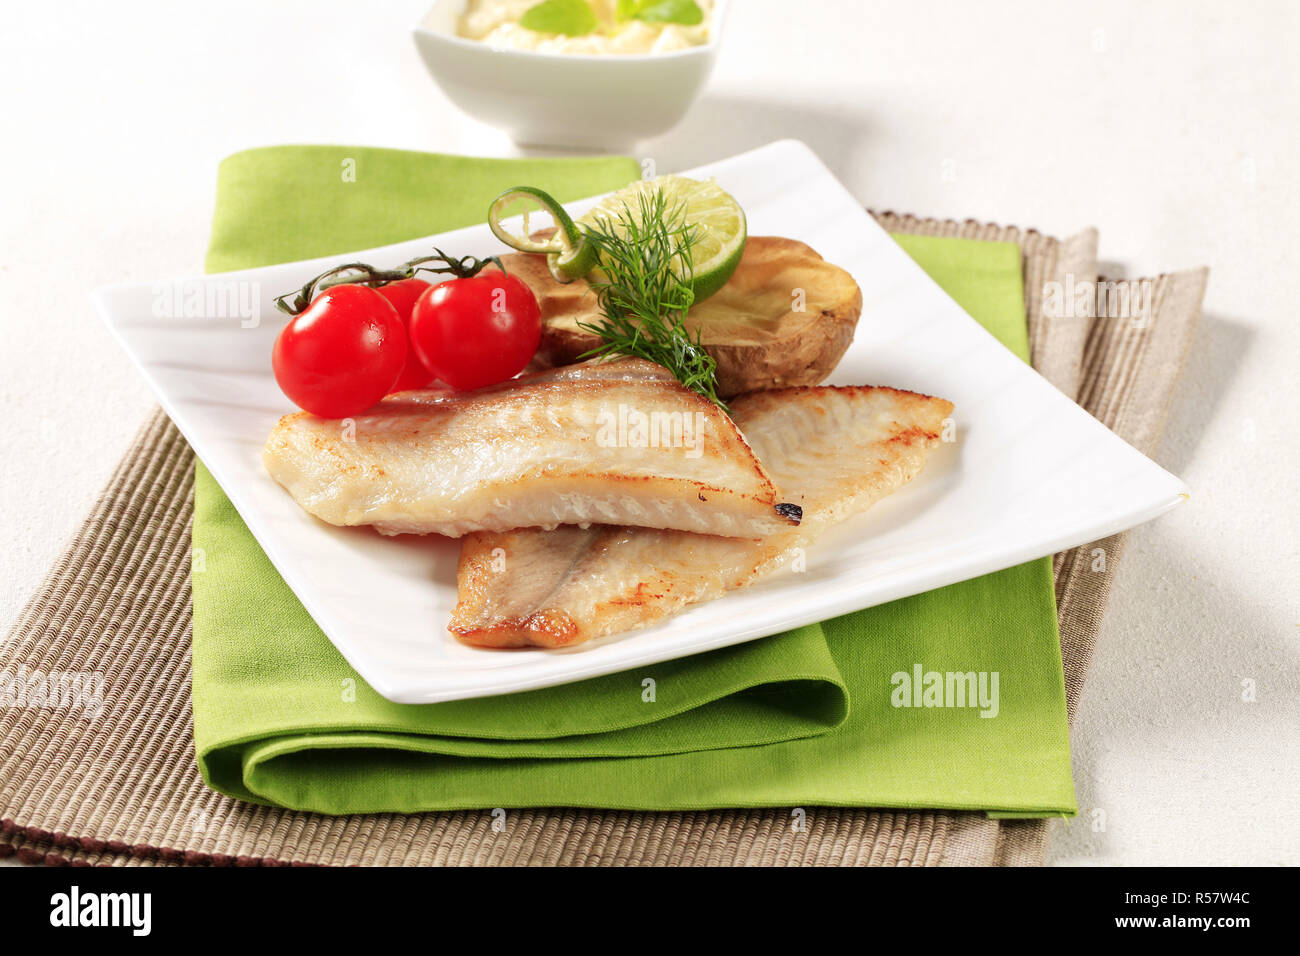 Skinless fish fillets with baked potato half - Stock Image